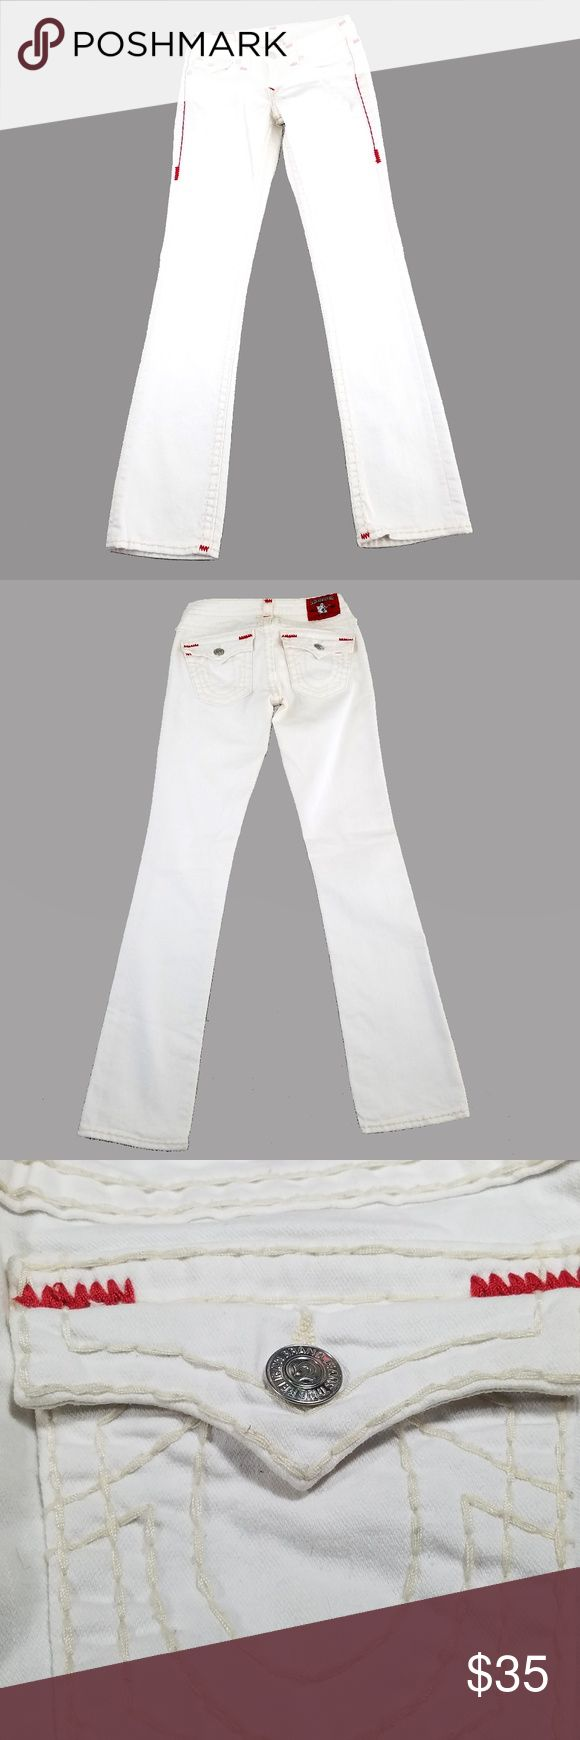 "True Religion Womens Jeans 28 Billy Straight Fit True Religion Womens Jeans 28 Billy Straight Fit White Red Accent USA 28 32 Seam to seam across waist: 14.25"" Rise: 7"" Inseam: 32.5"" Top of waist to bottom (length): 40""  Excellent condition with minor wear True Religion Jeans Straight Leg"